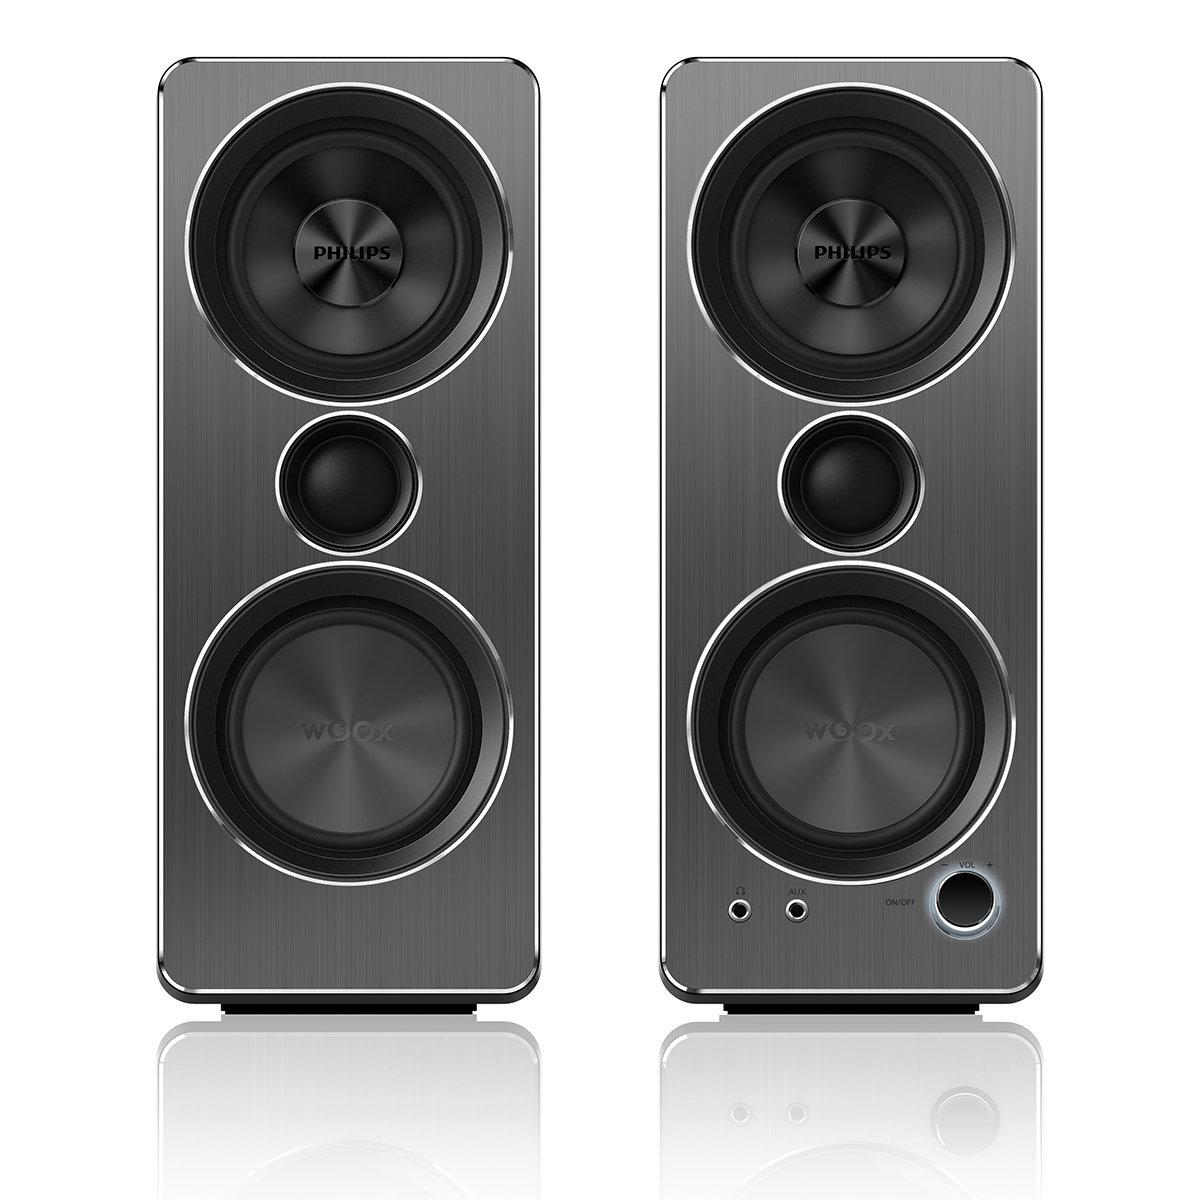 Philips SPA8210 37 Multimedia Speakers 2.0 Black